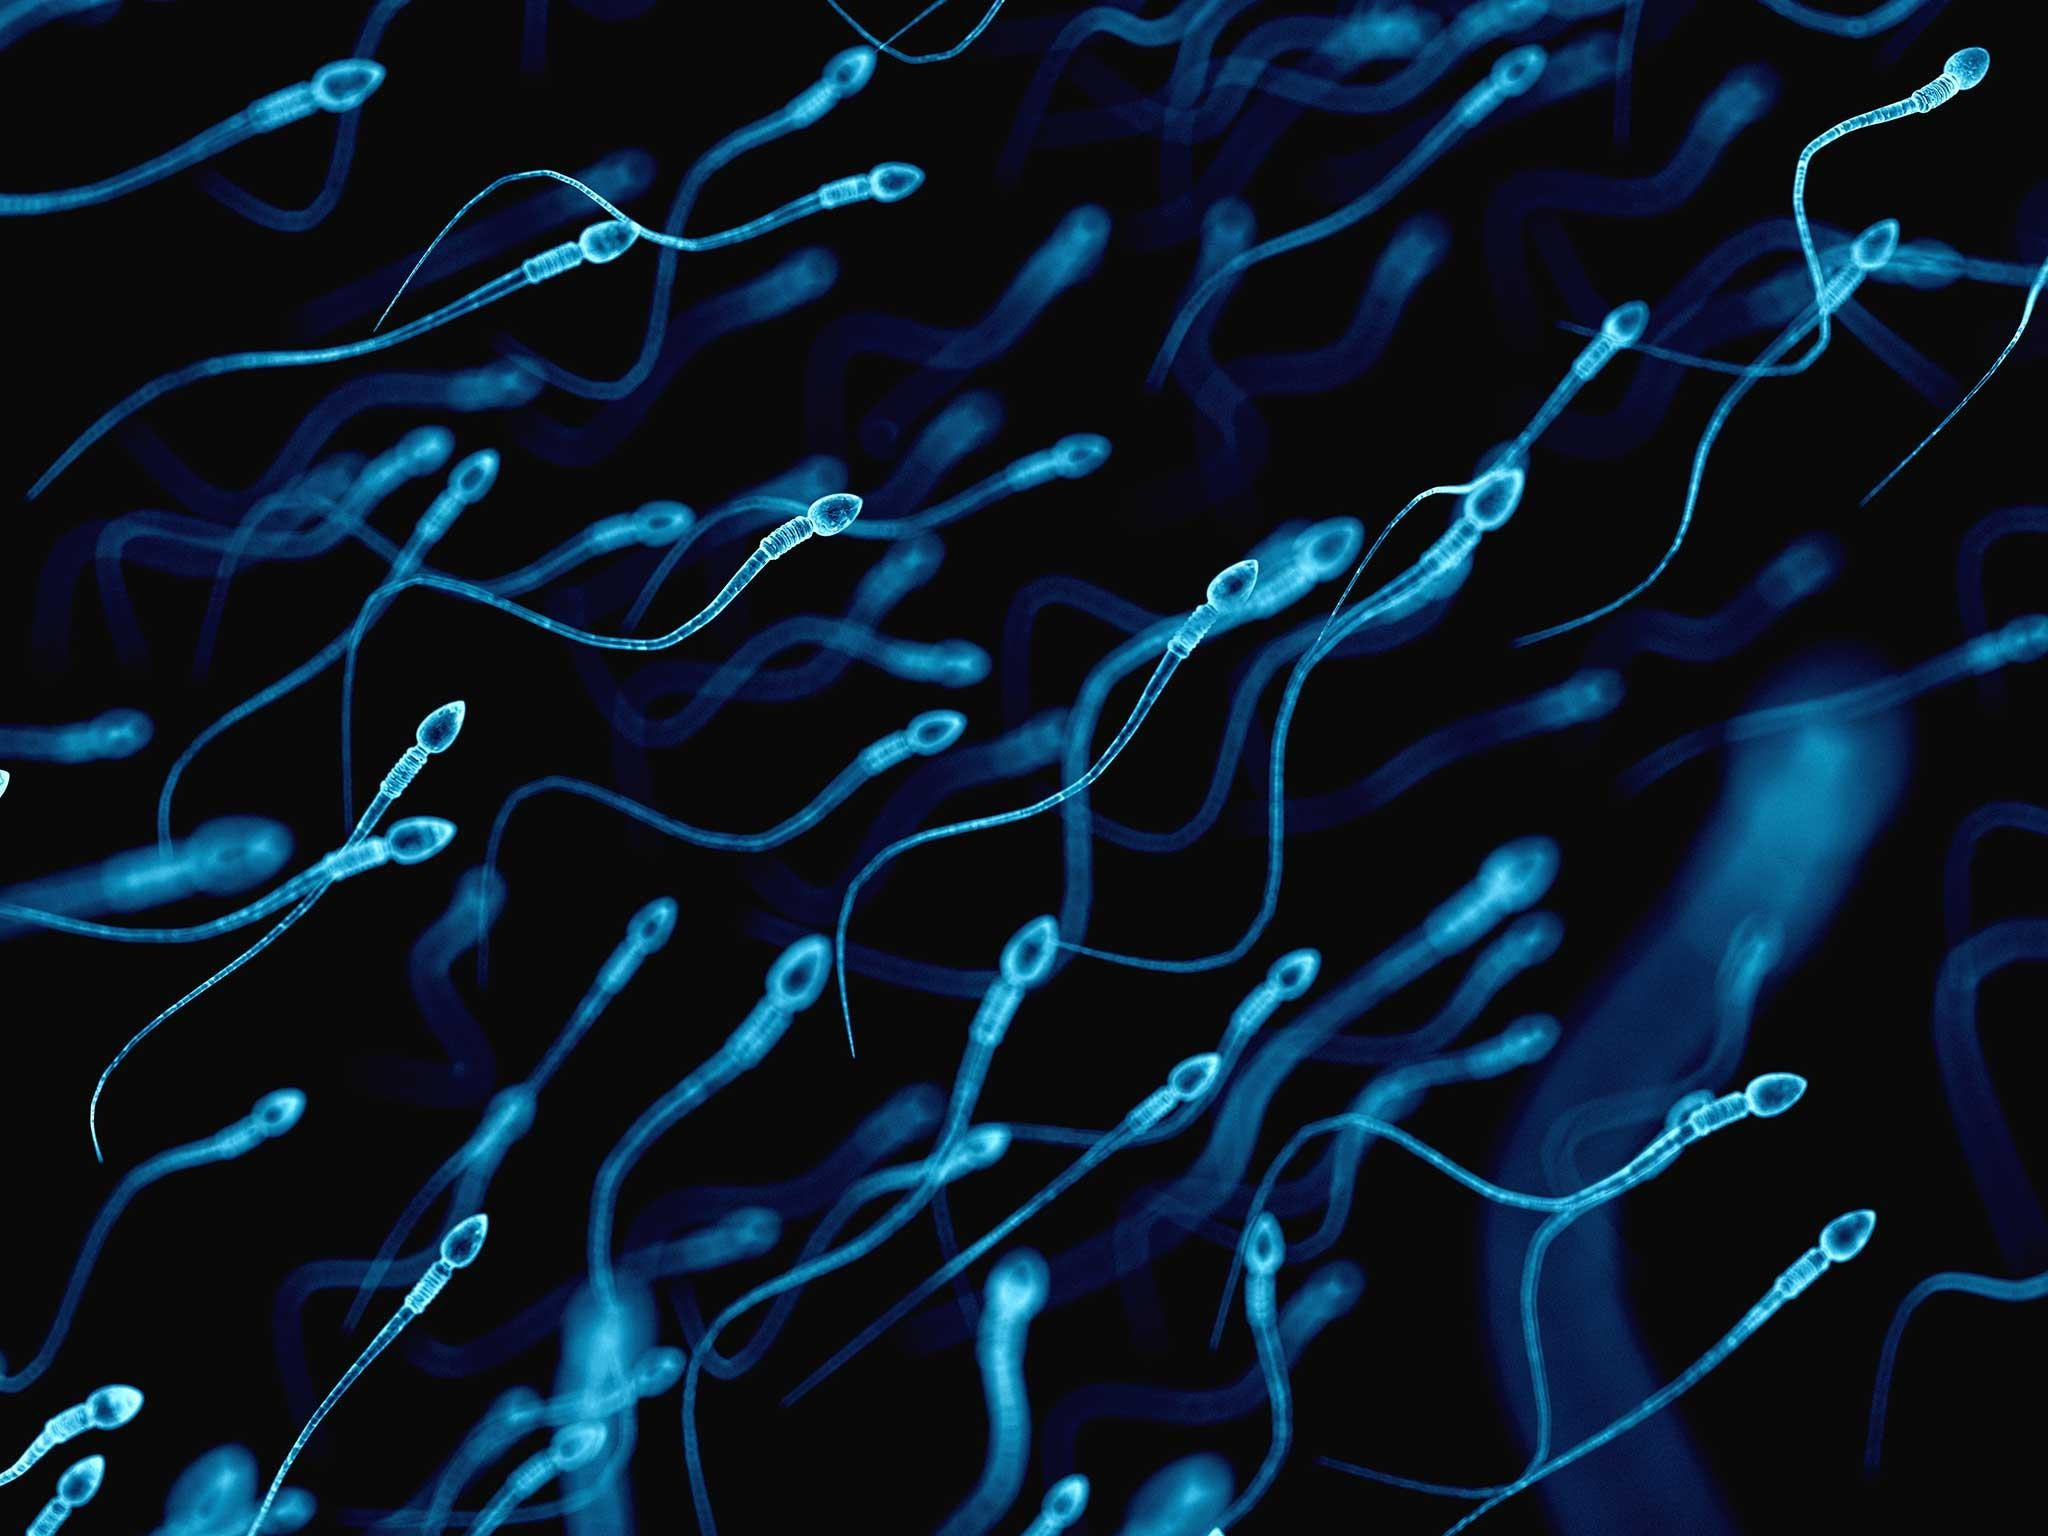 Groundbreaking fertilisation technique could allow gay couples to have babies with each other